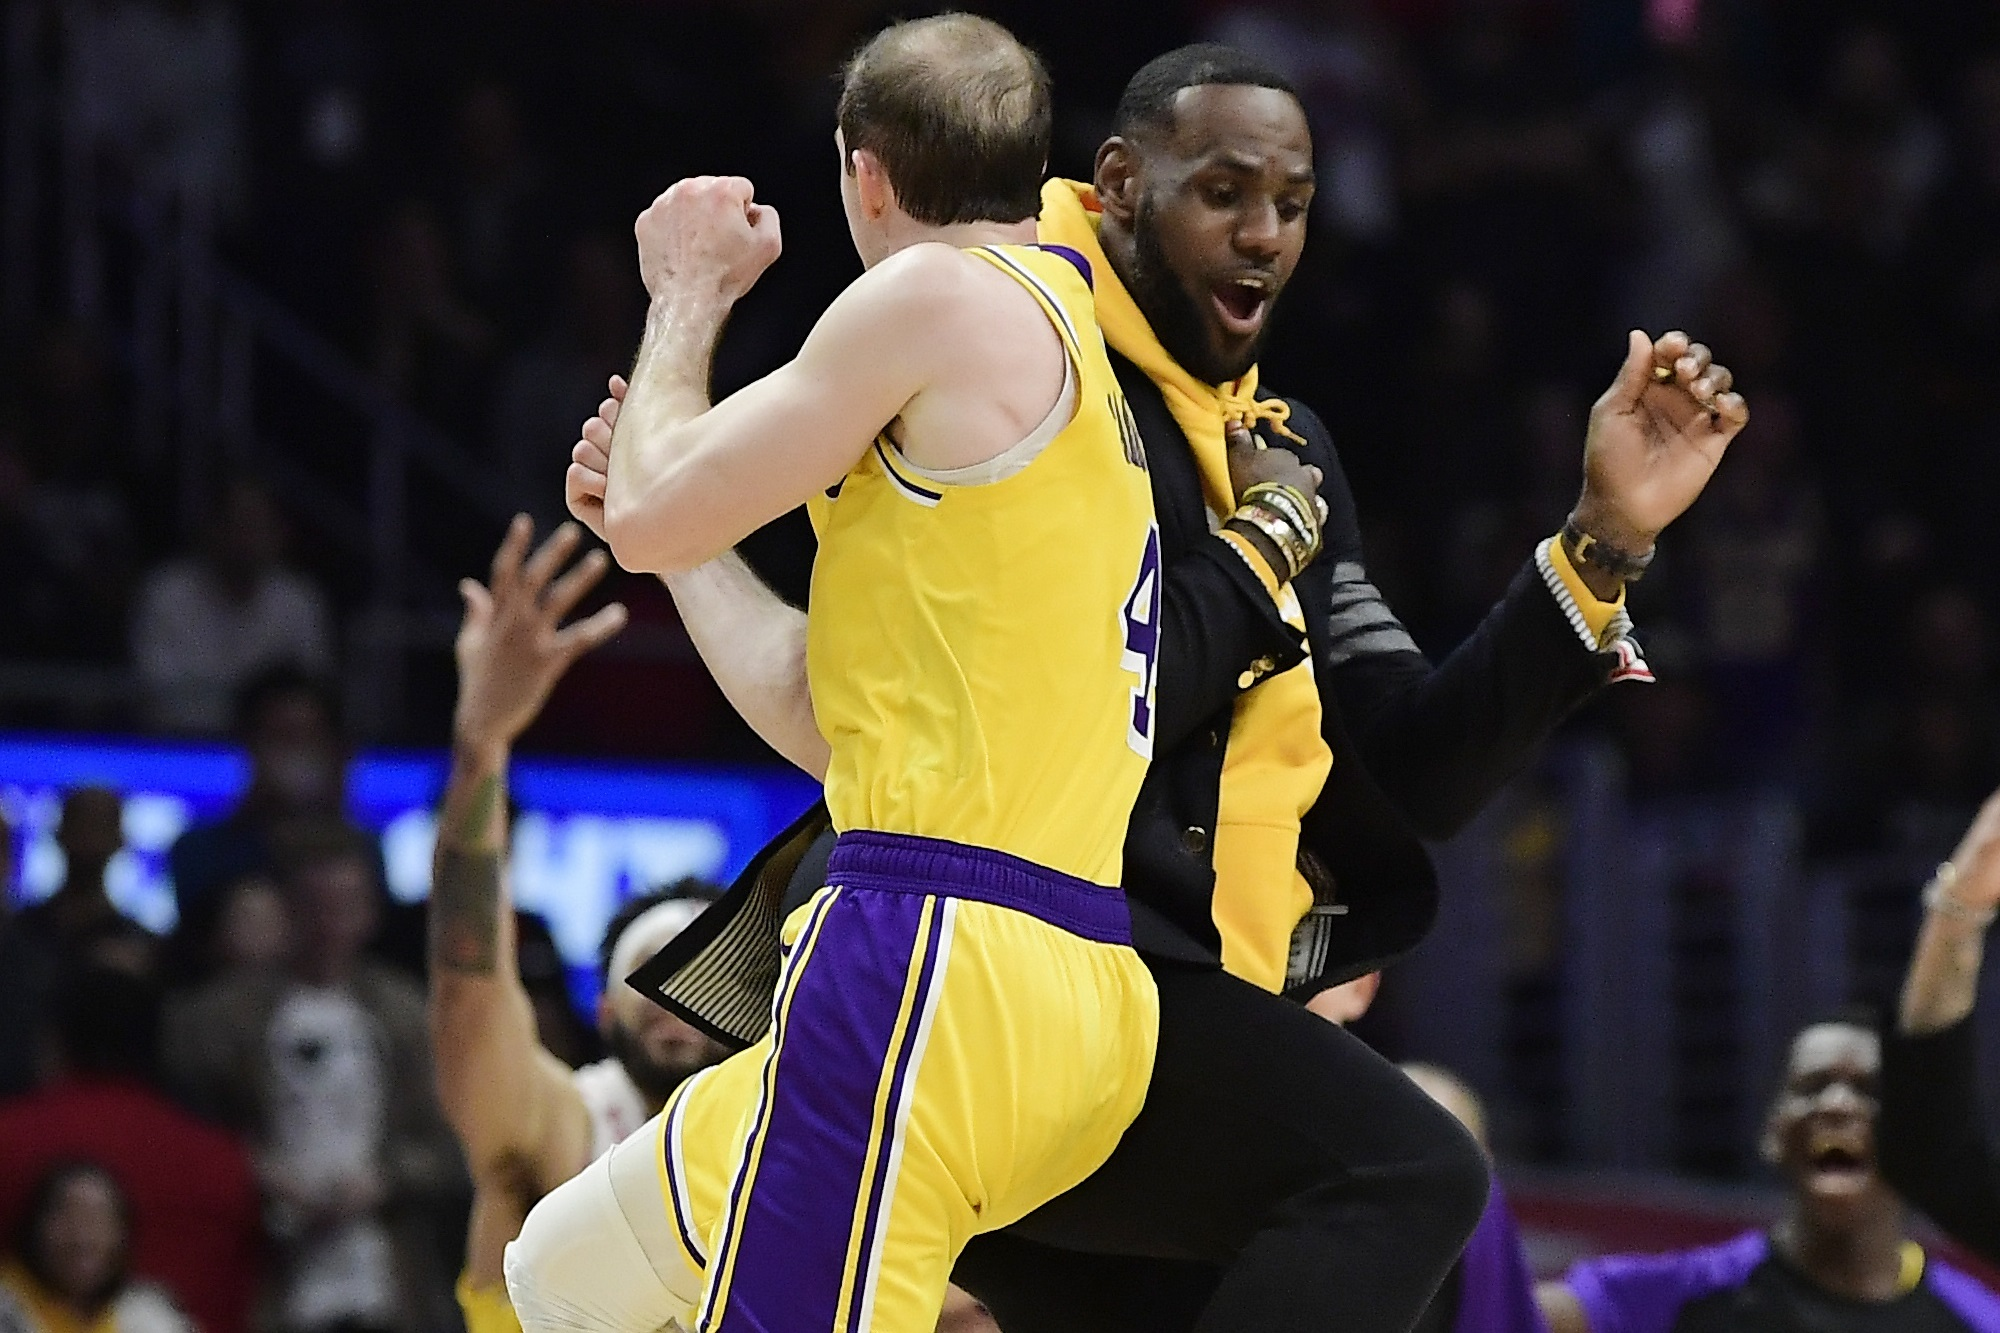 Alex Caruso and LeBron James, Los Angeles Lakers vs L.A. Clippers at Staples Center (Mark J. Terrill, AP Photo)